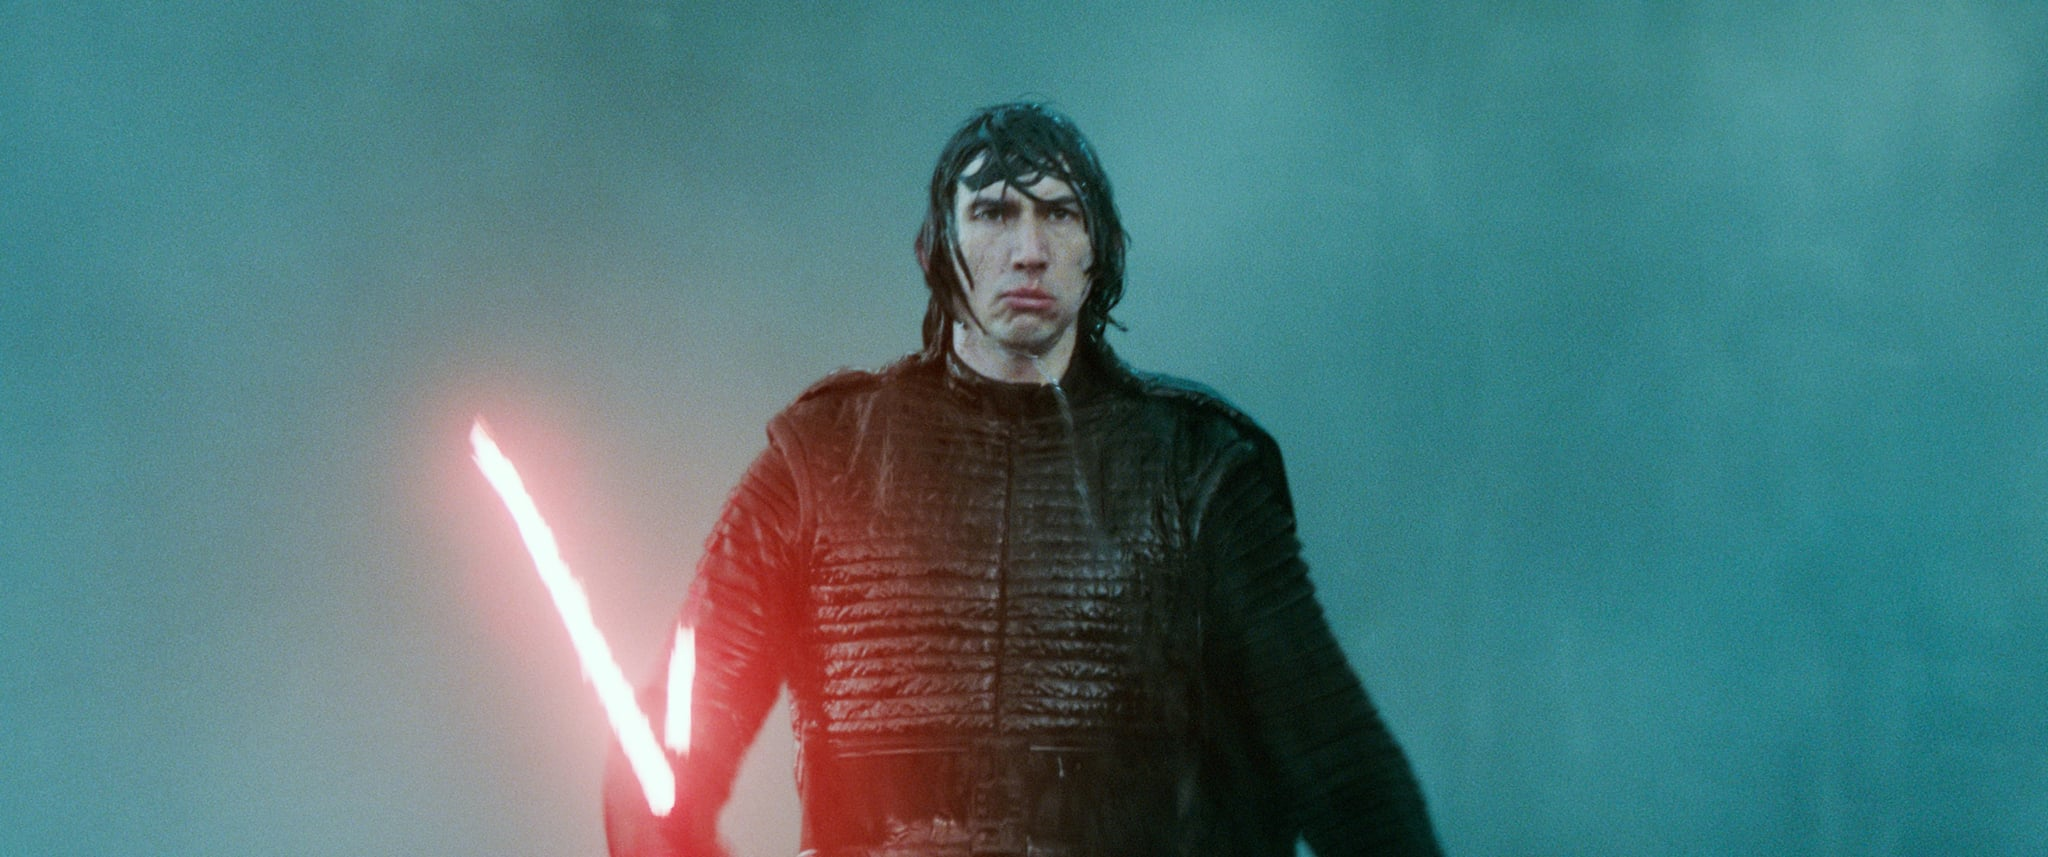 How Rey And Kylo Ren Are Connected By The Force In Star Wars Popsugar Entertainment